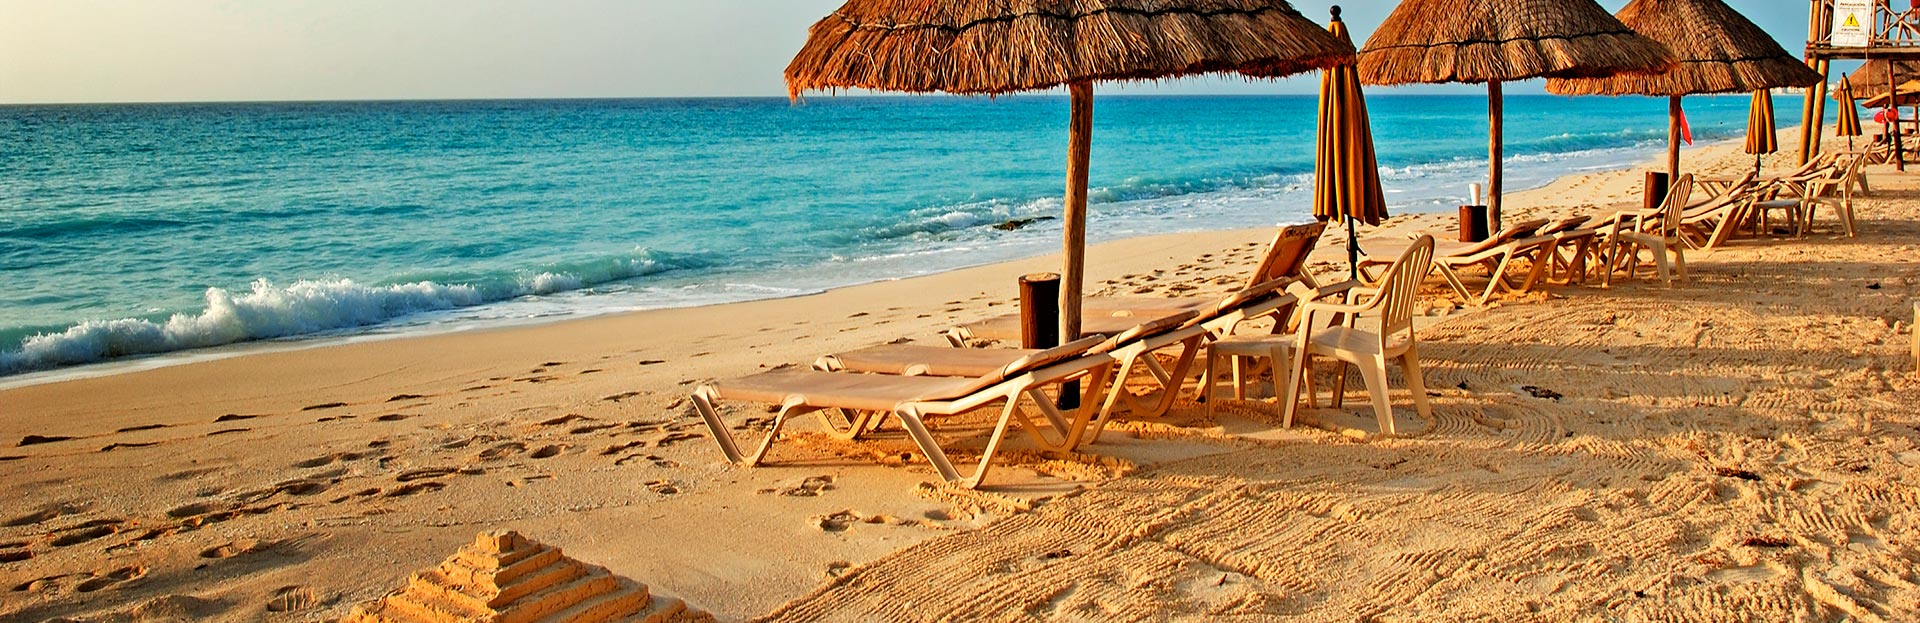 Cancun Vacations Packages From Canada